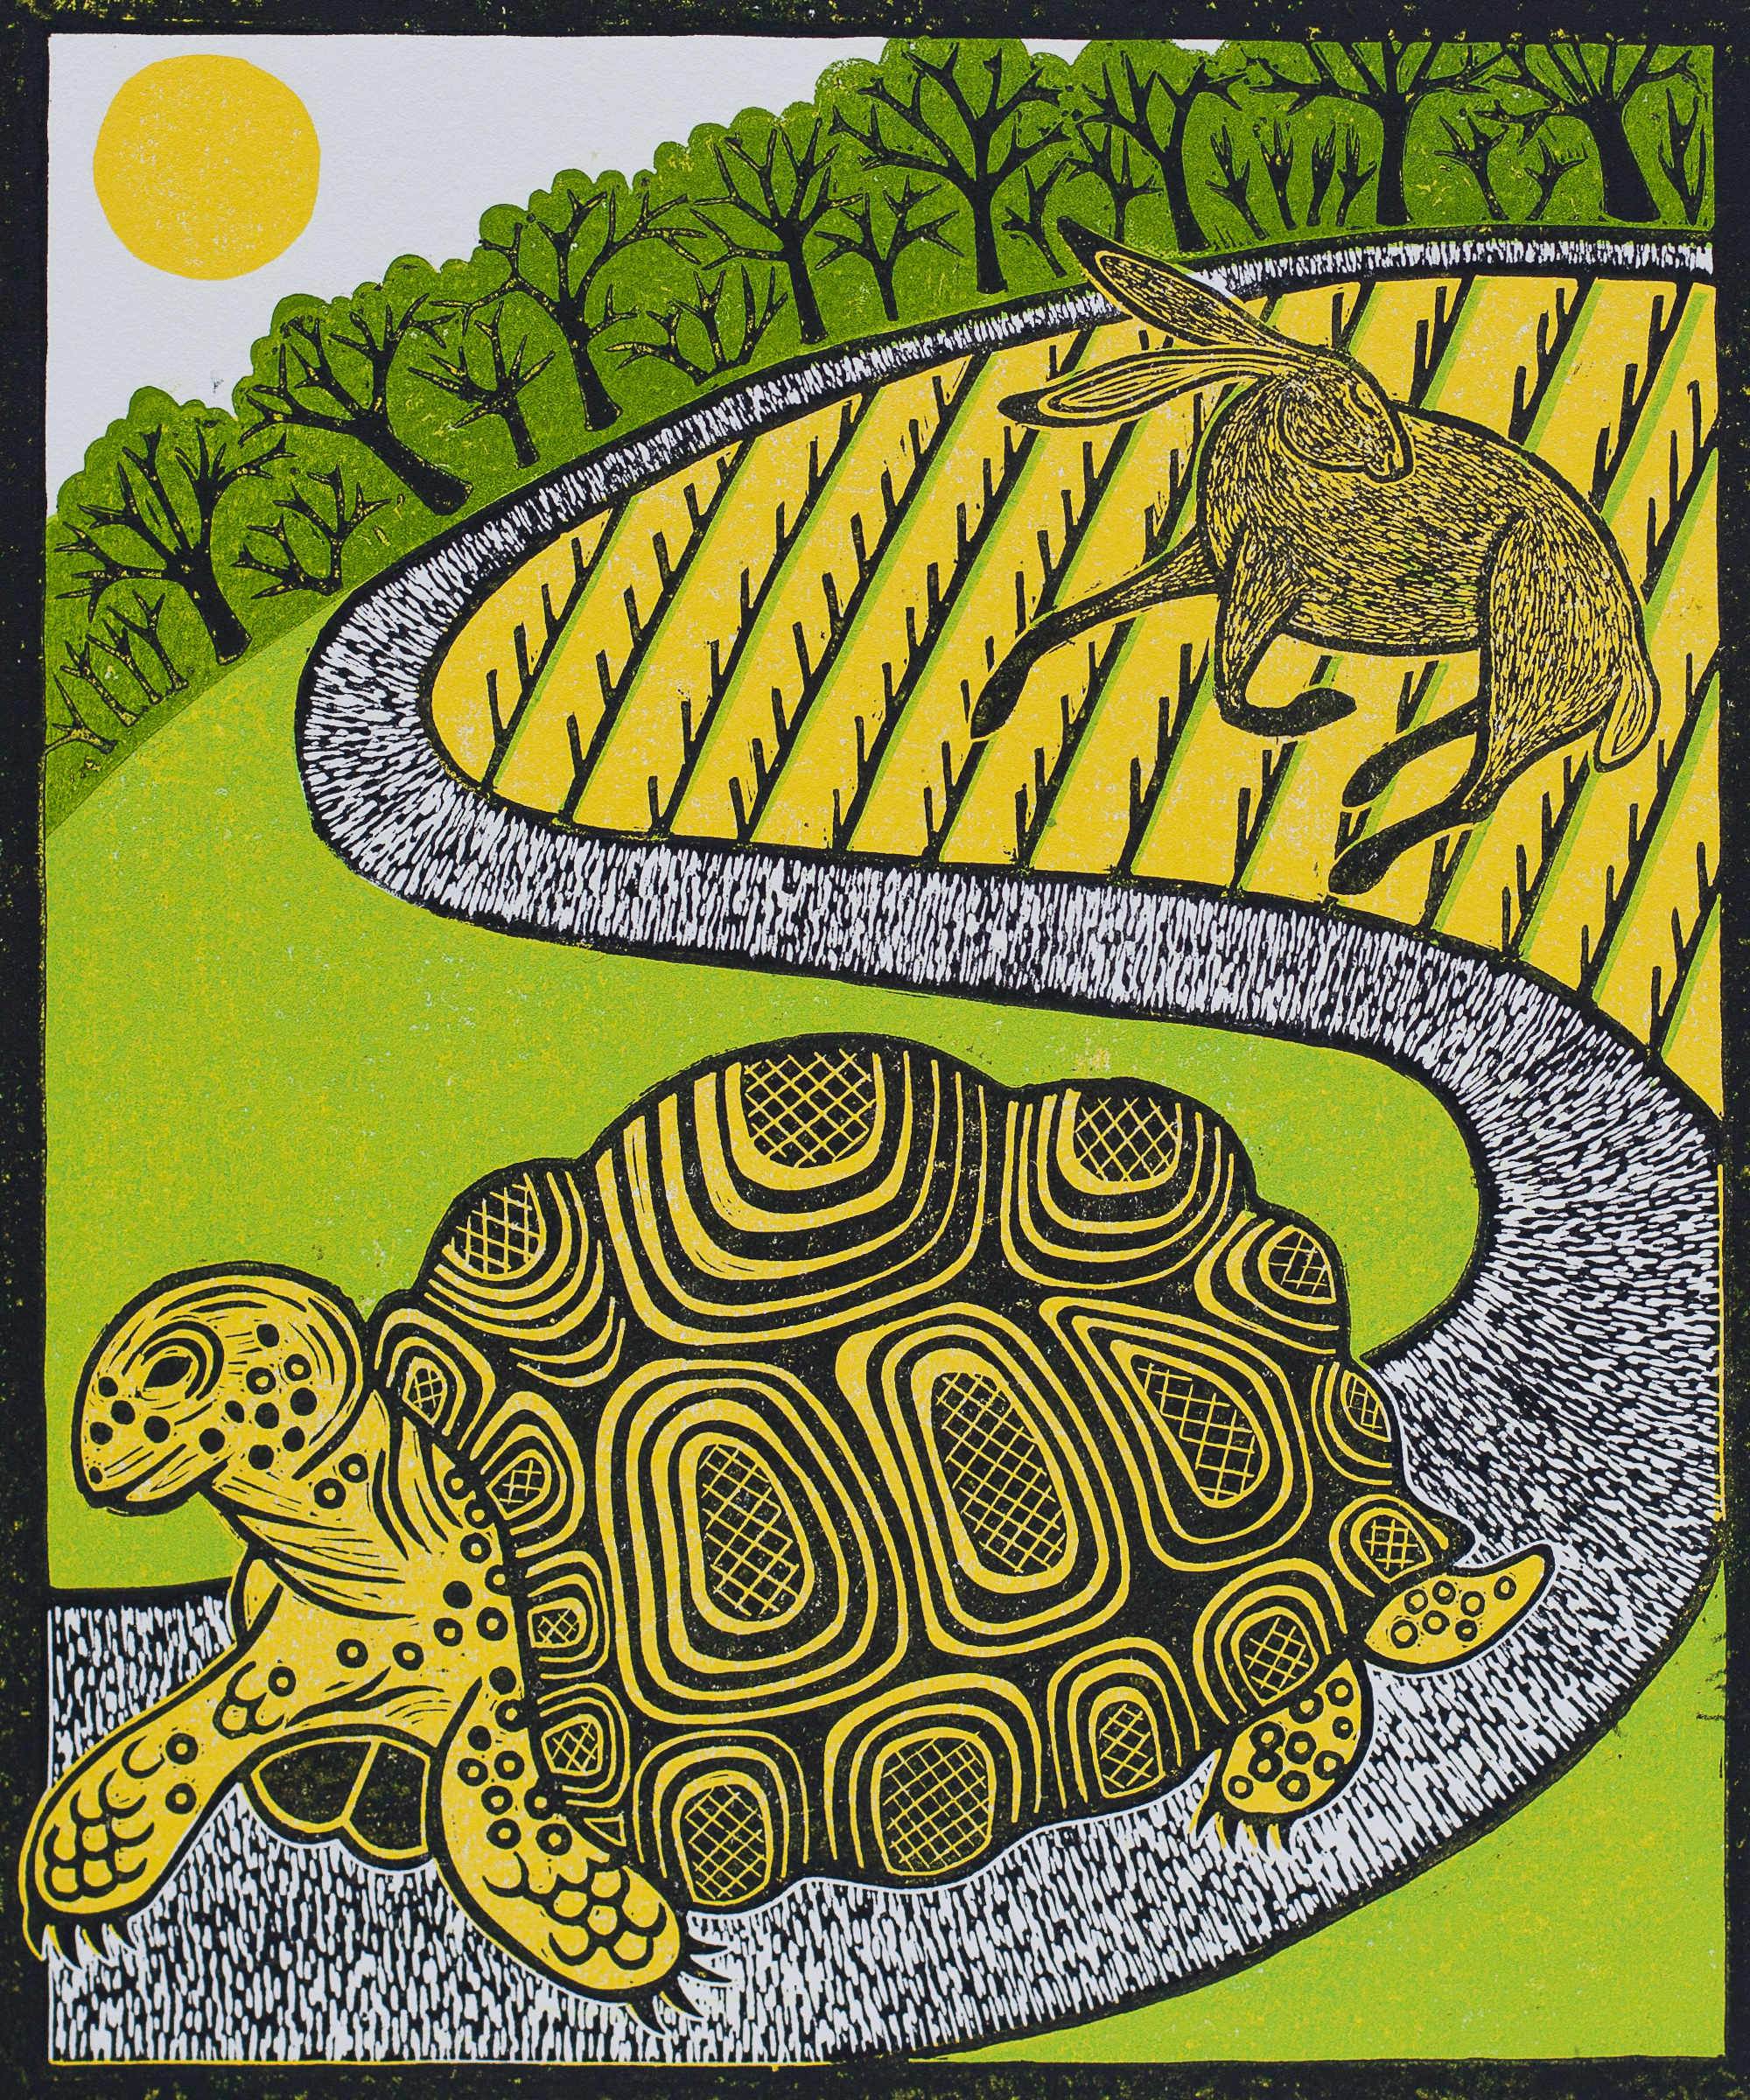 The Tortoise and the Hare, Rebecca Homfr